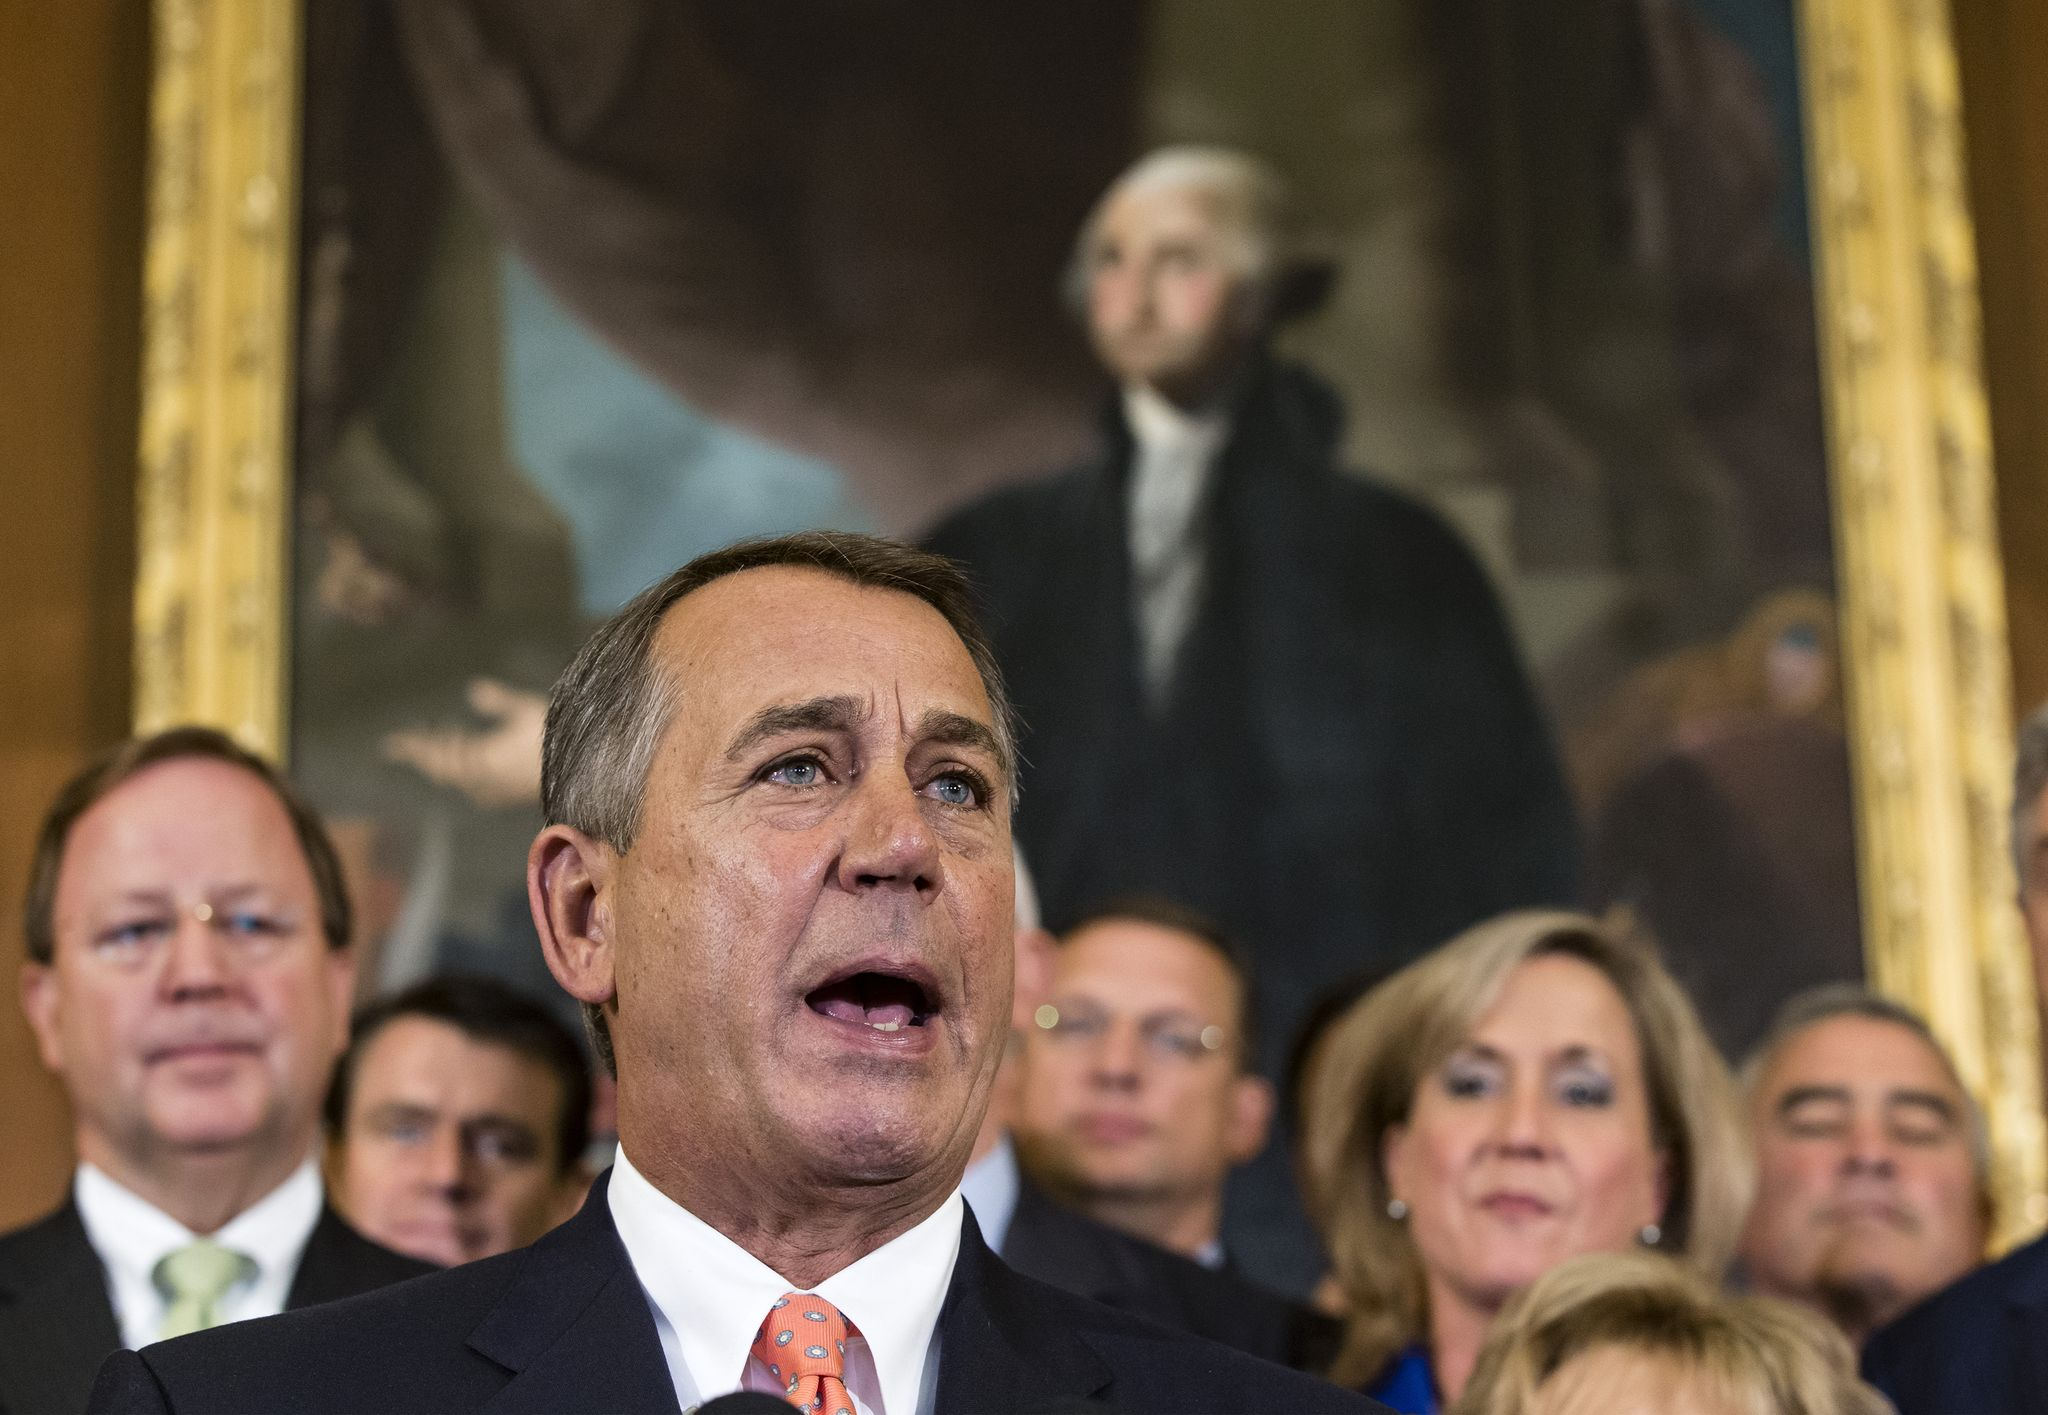 House passes spending bill to defund Obamacare